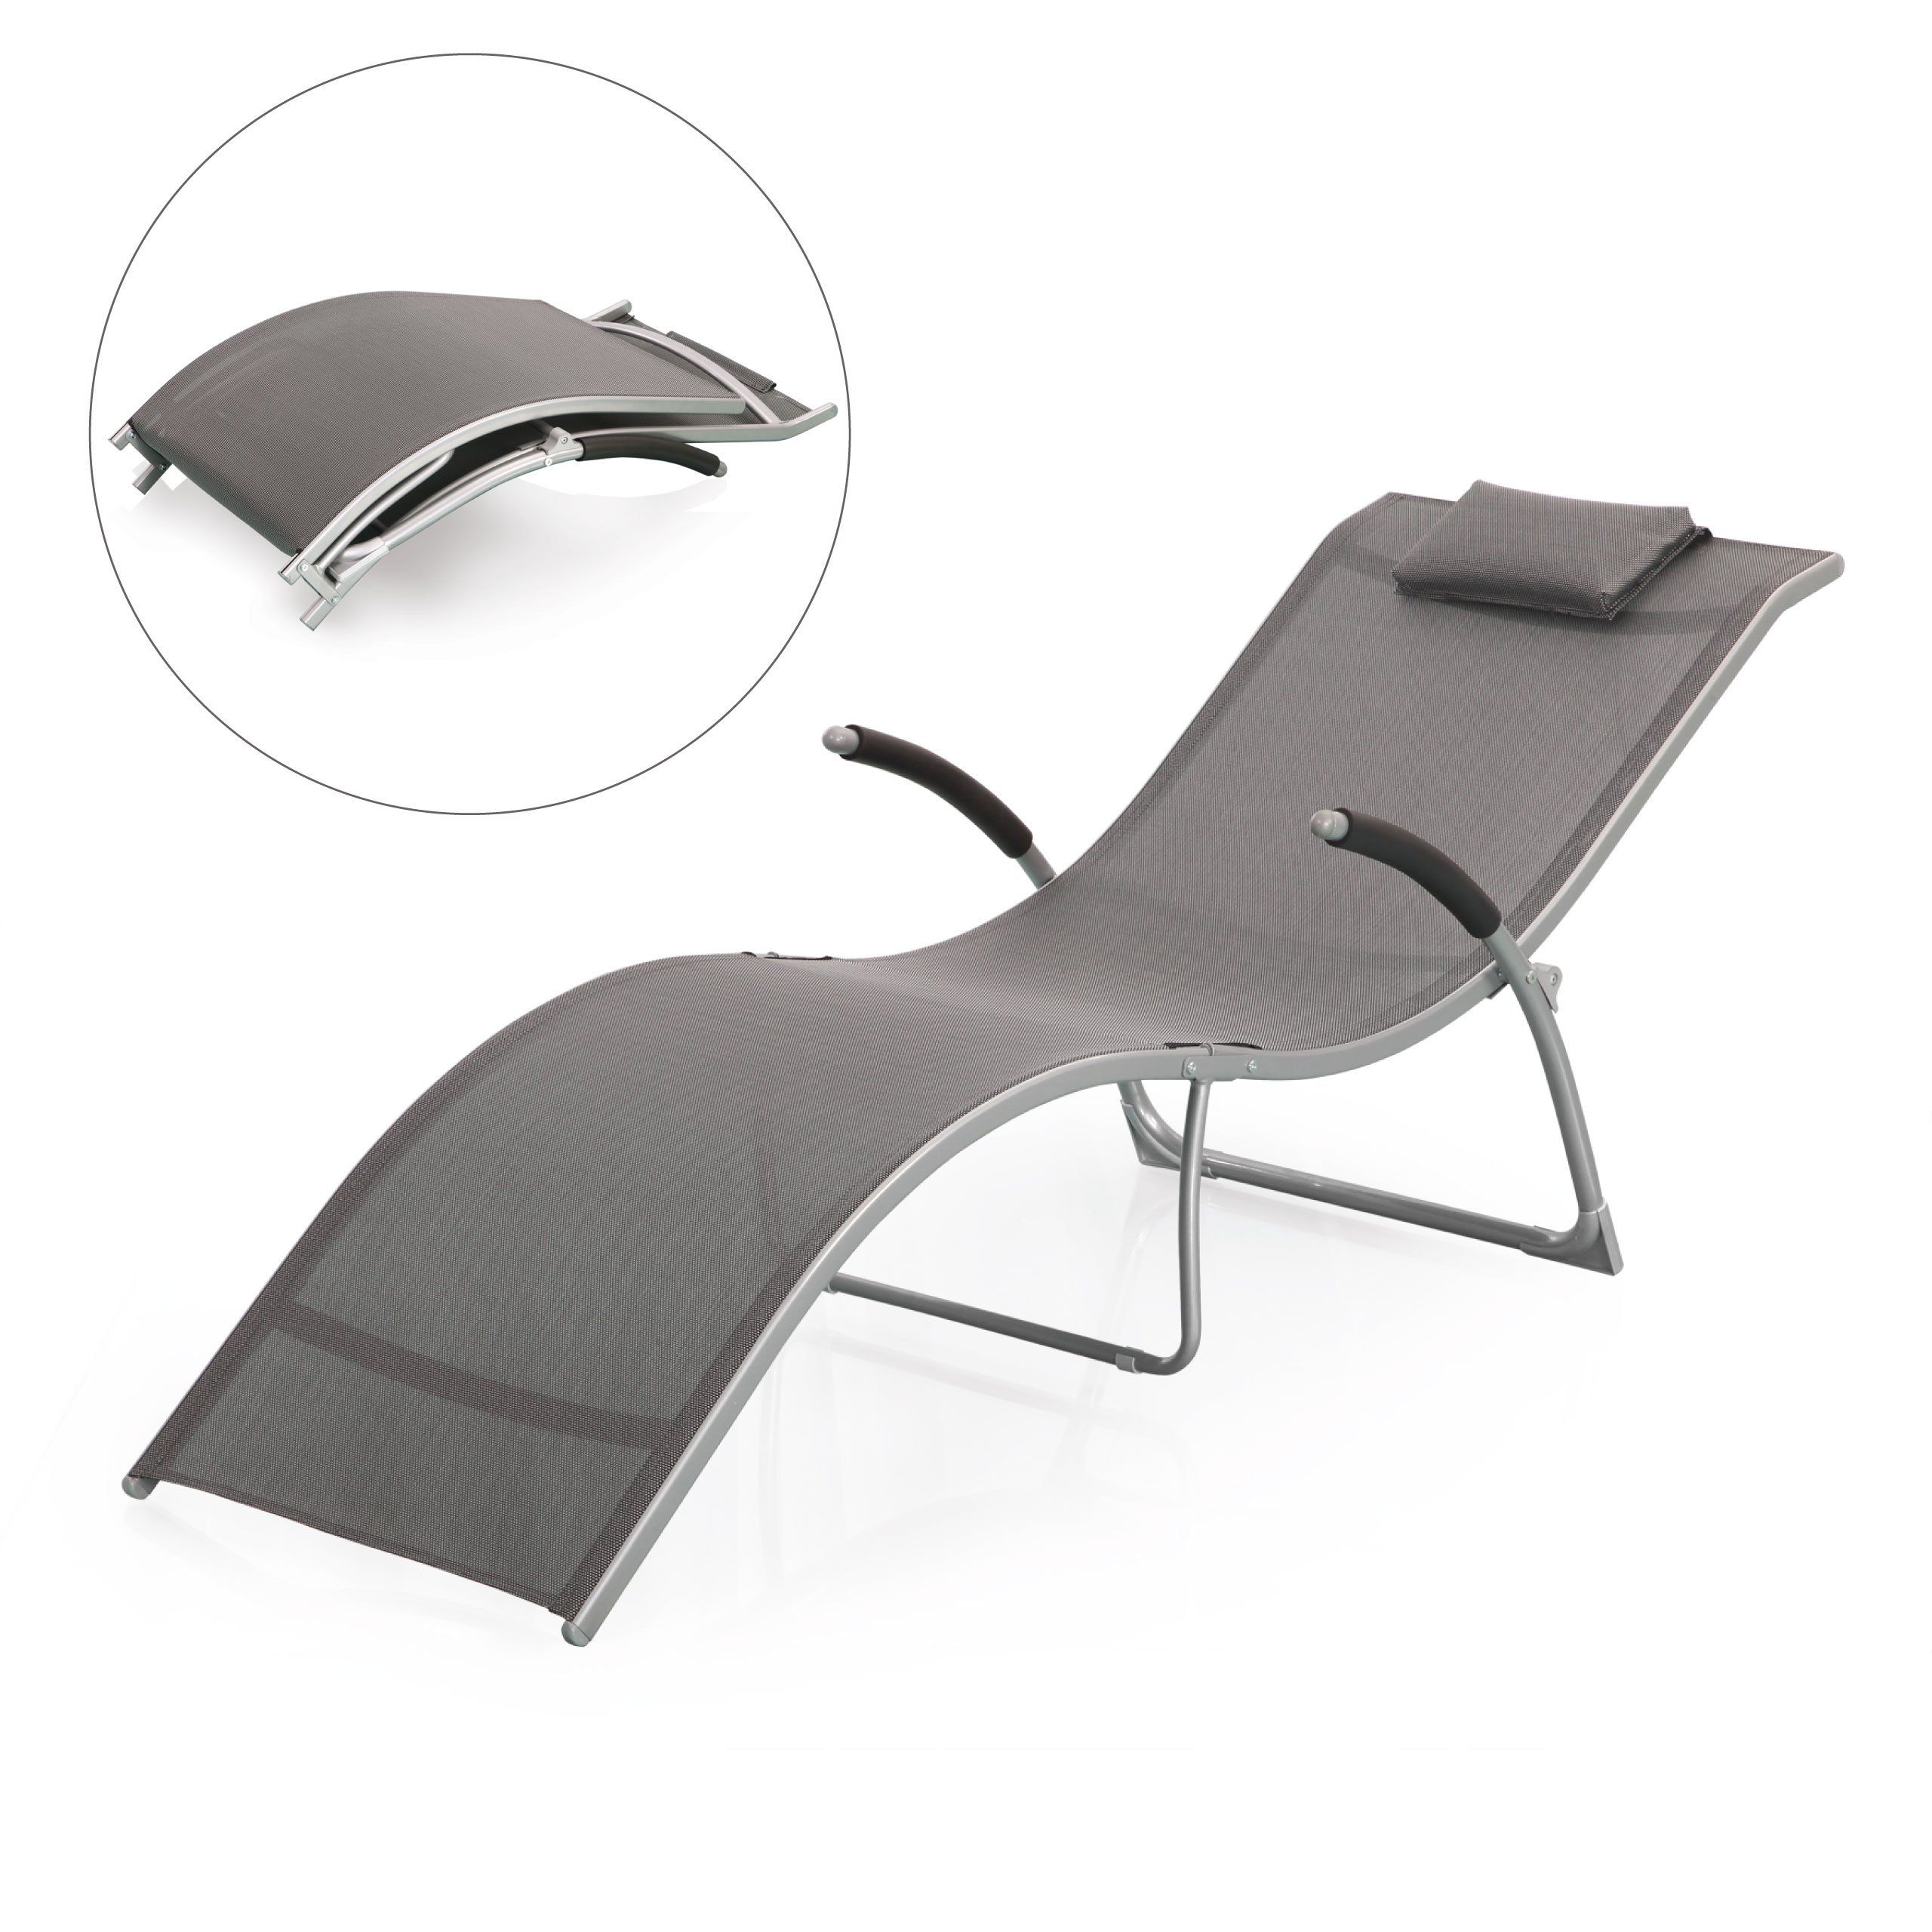 space saving patio furniture. £50 Jarder Foldable Reclined Sun Lounger - Space Saving Garden, Patio Furniture: Furniture